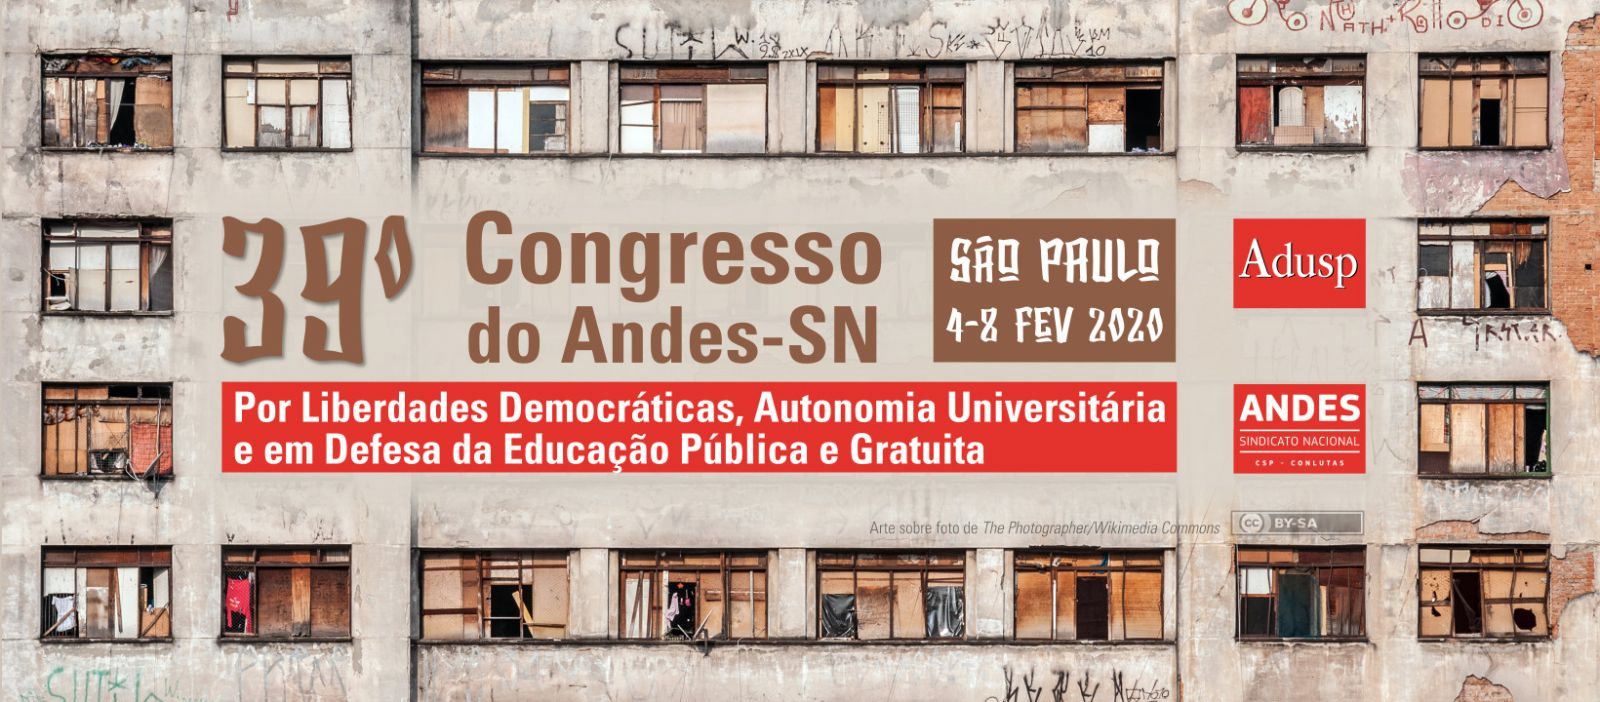 39º CONGRESSO DO ANDES-SN